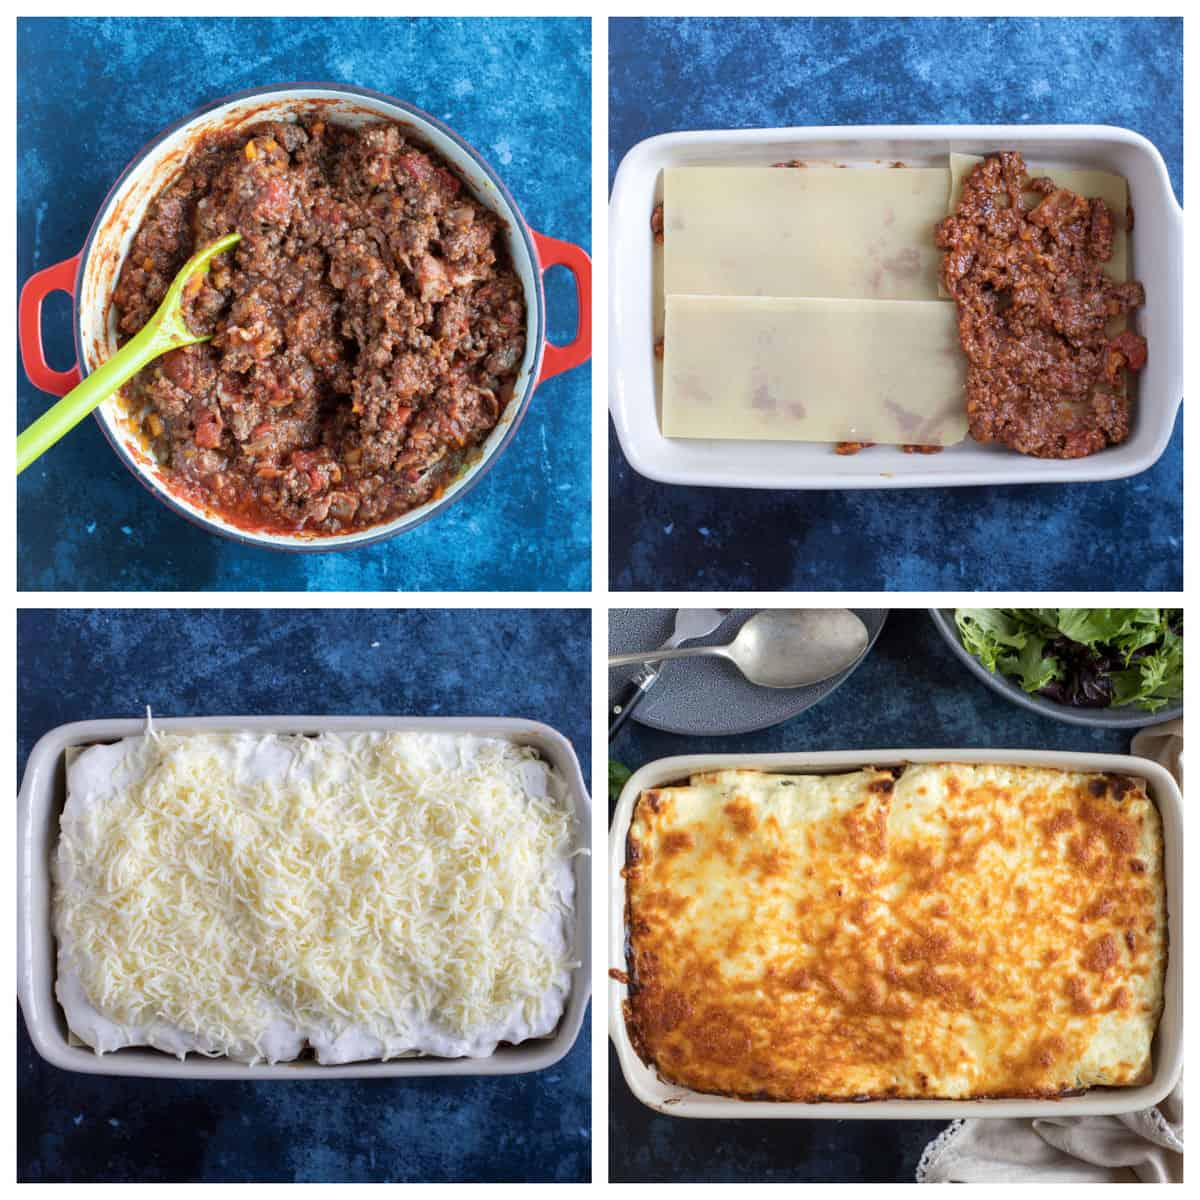 Step by step photo instructions for making cheat's lasagne.